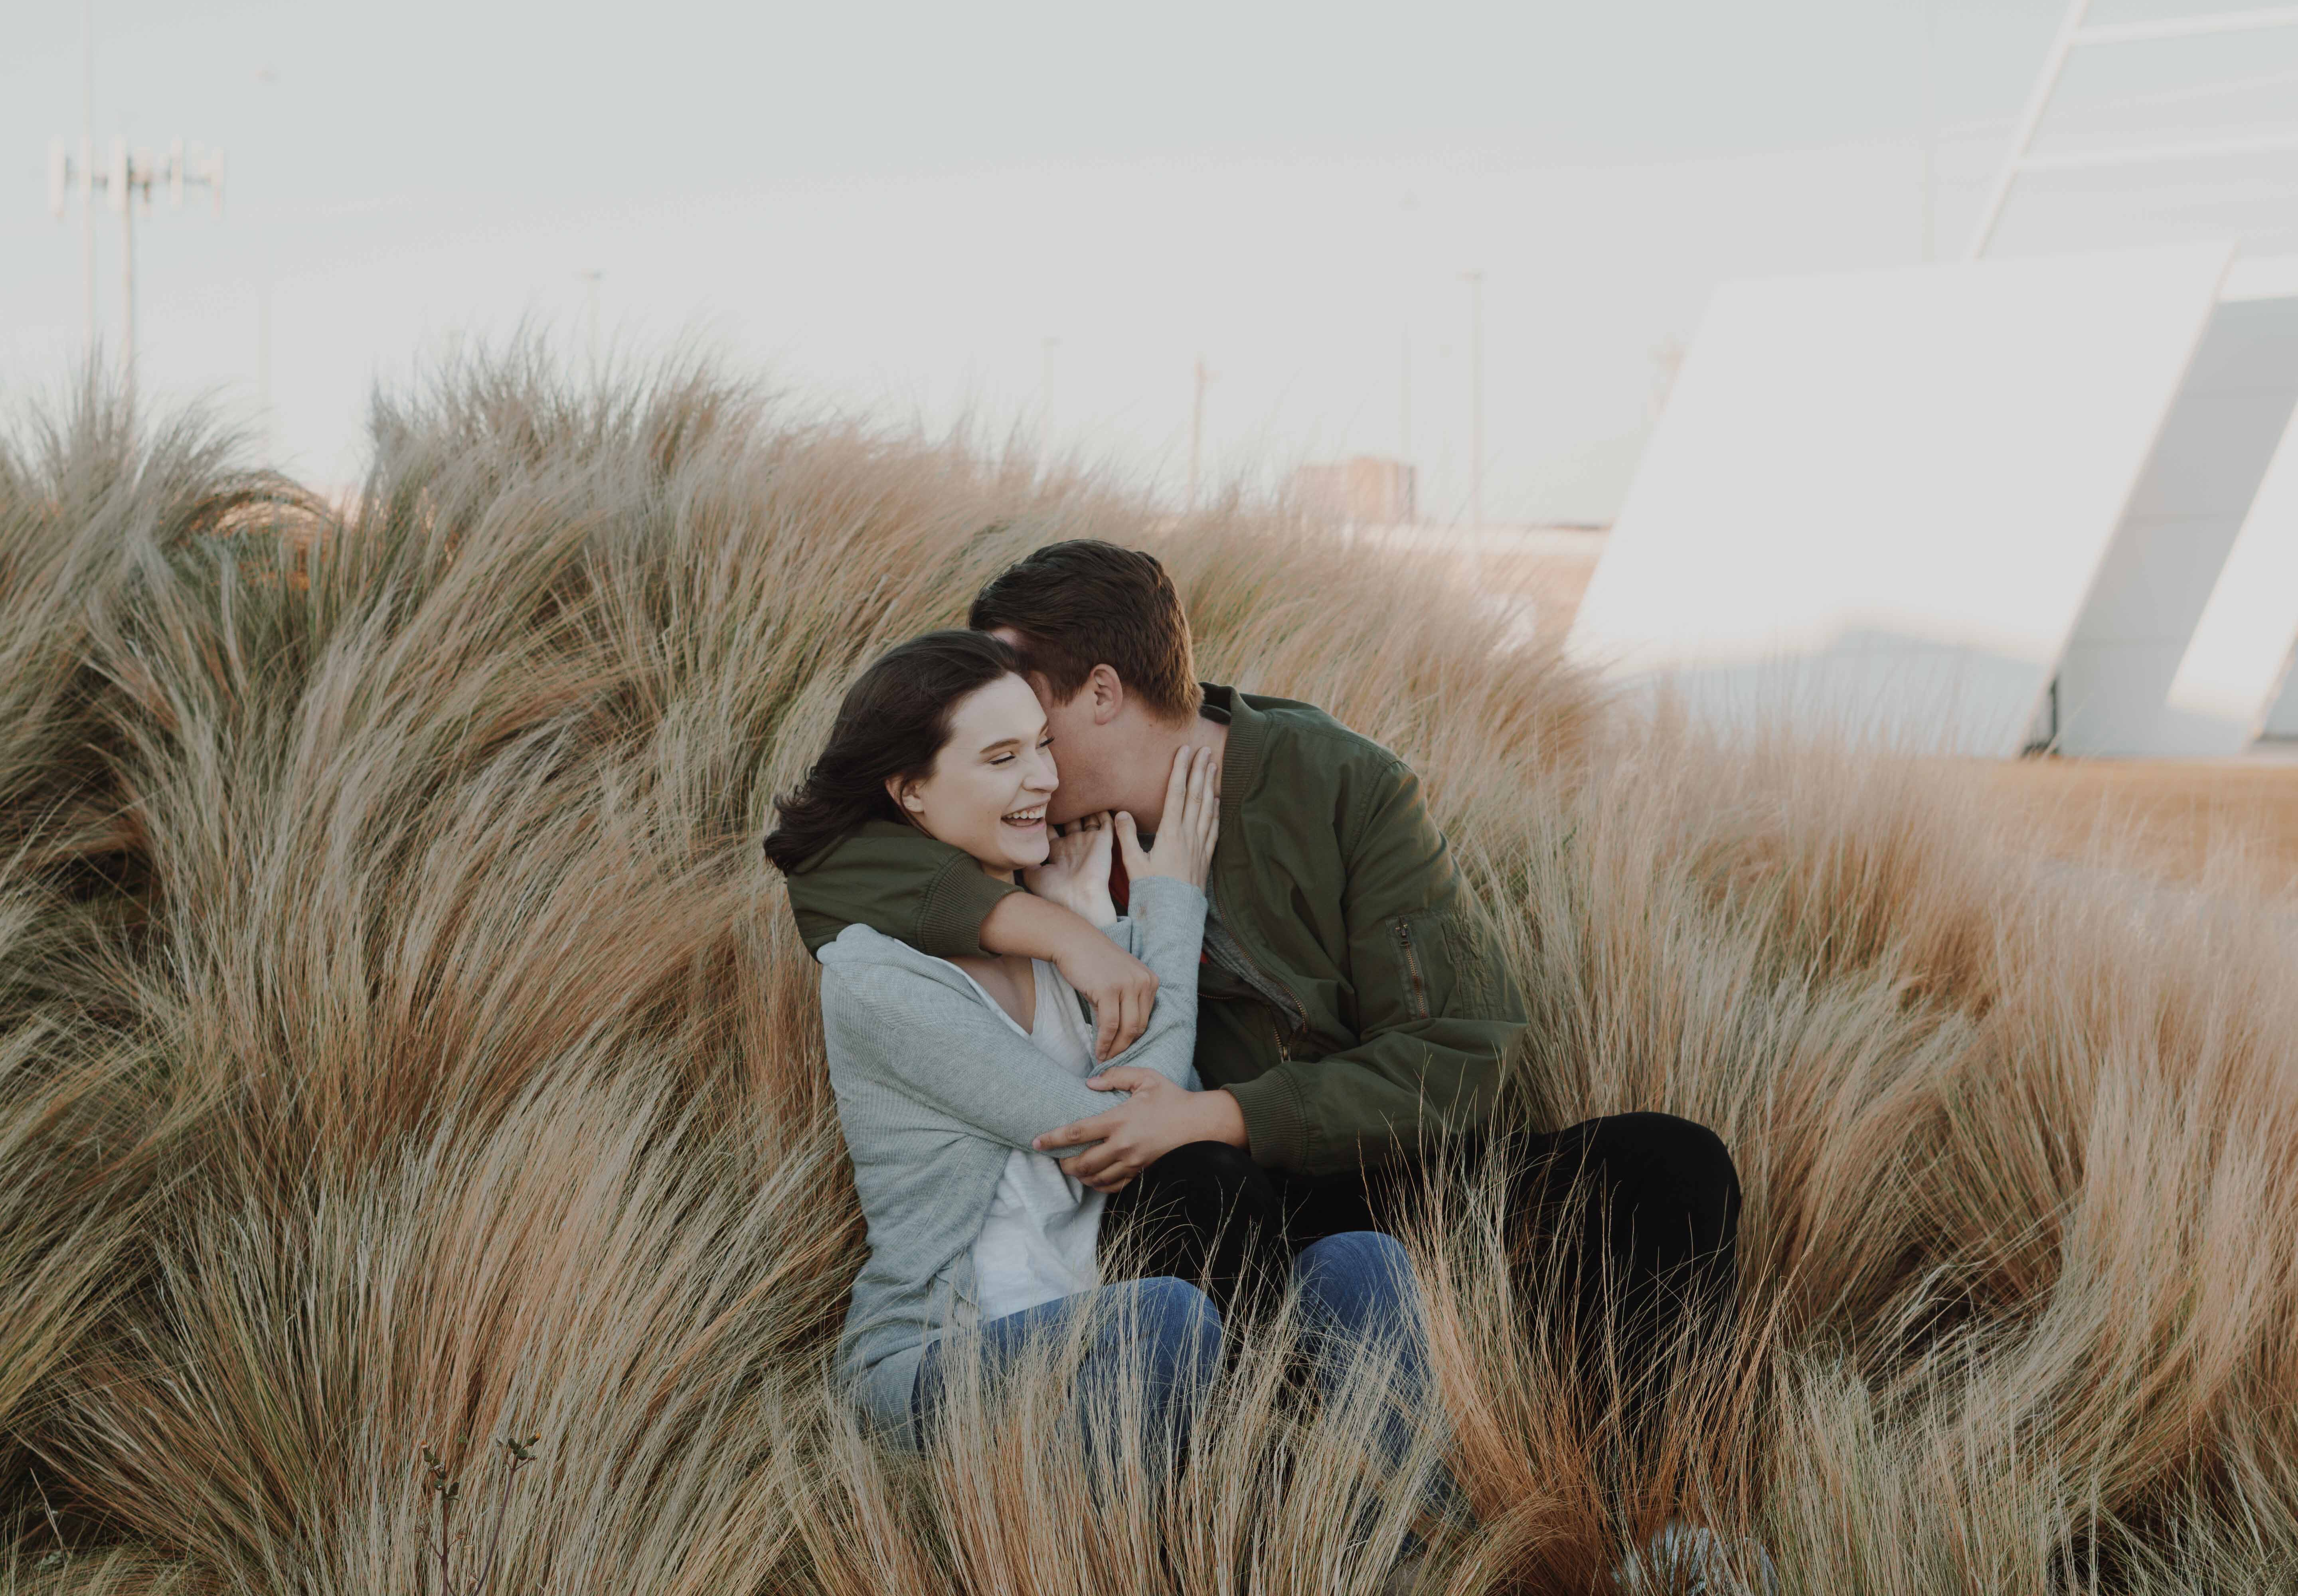 Show us the crazy ways your mind can work!Unsplash (Public Domain) #freetoedit #couple #girl #boy #love #nature #emotions #people #details #happy #autumn